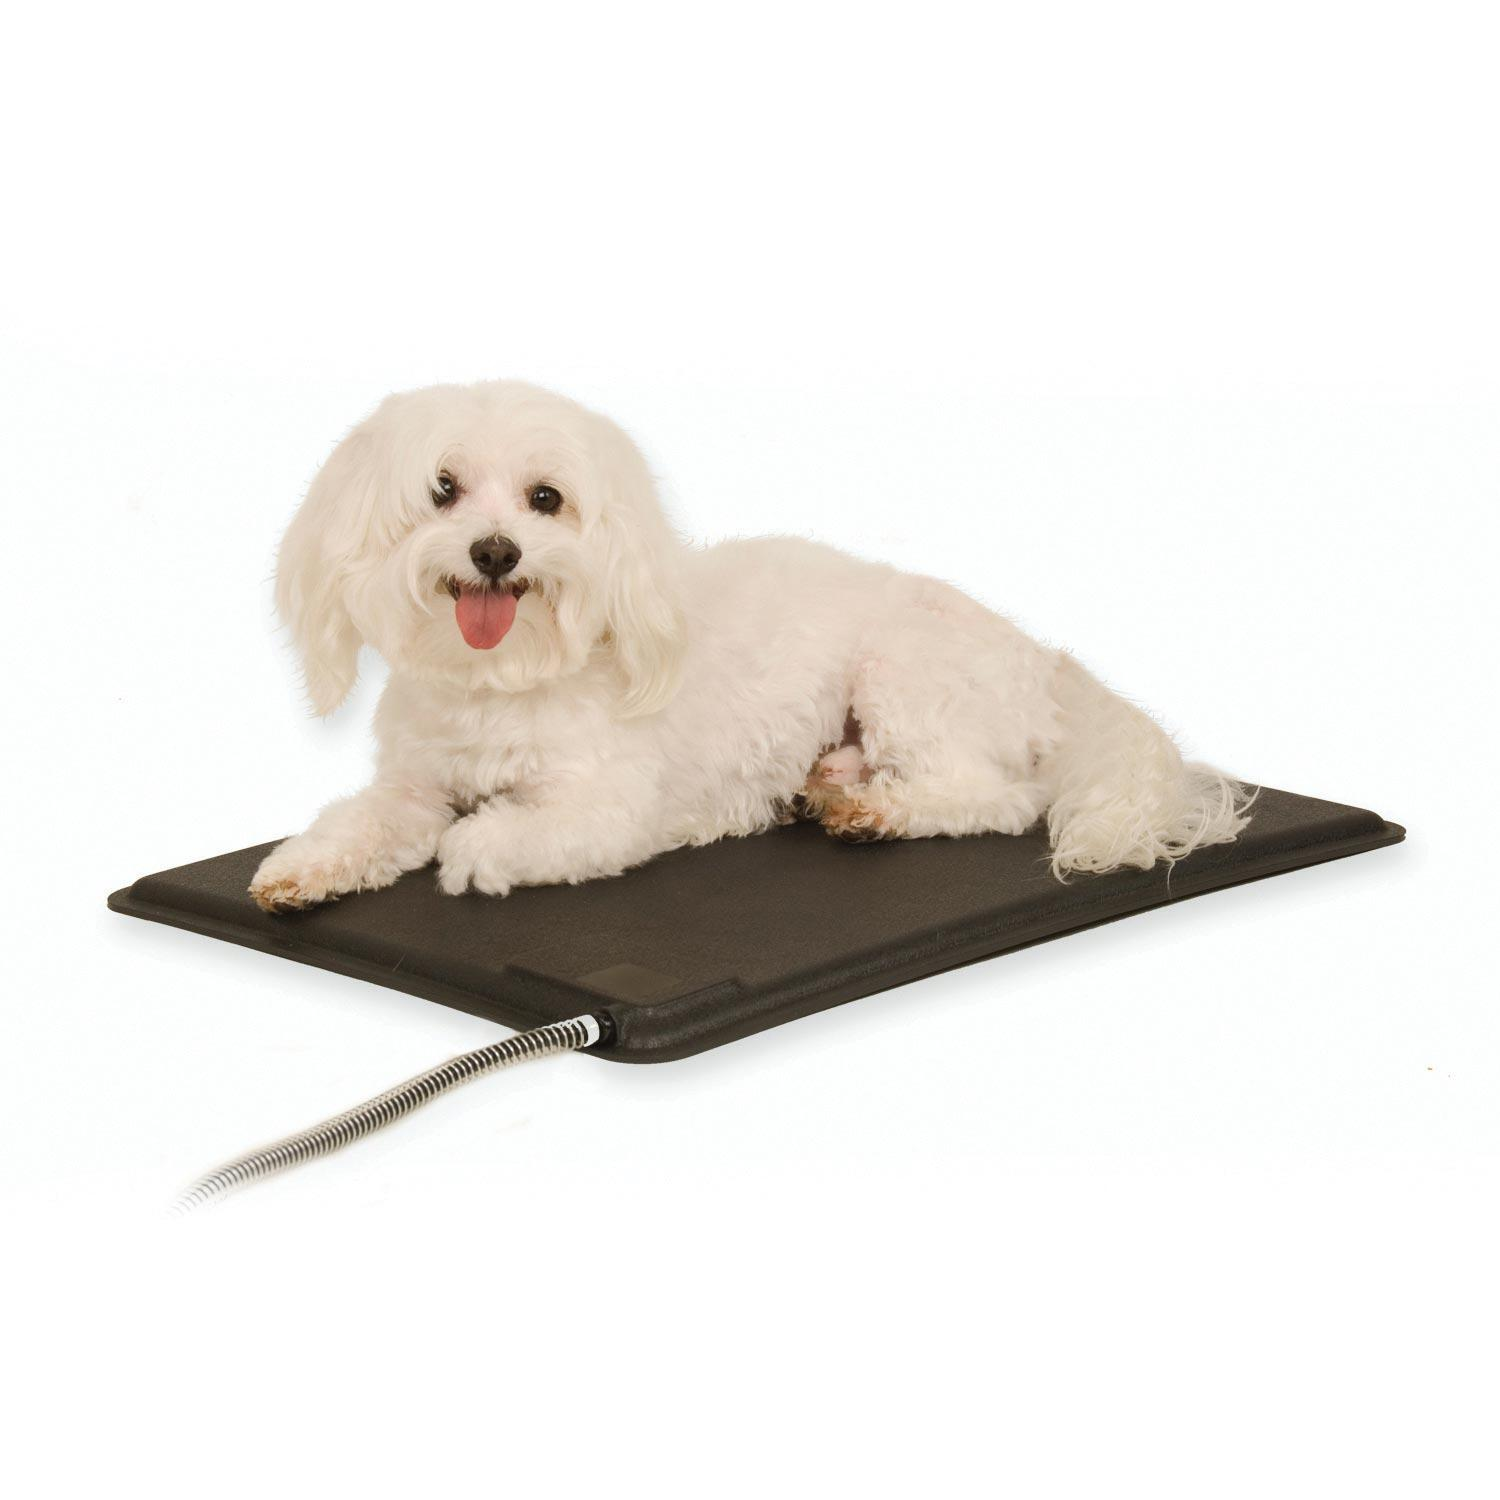 Amazoncom KH Manufacturing Lectro Kennel Heated Pad with FREE